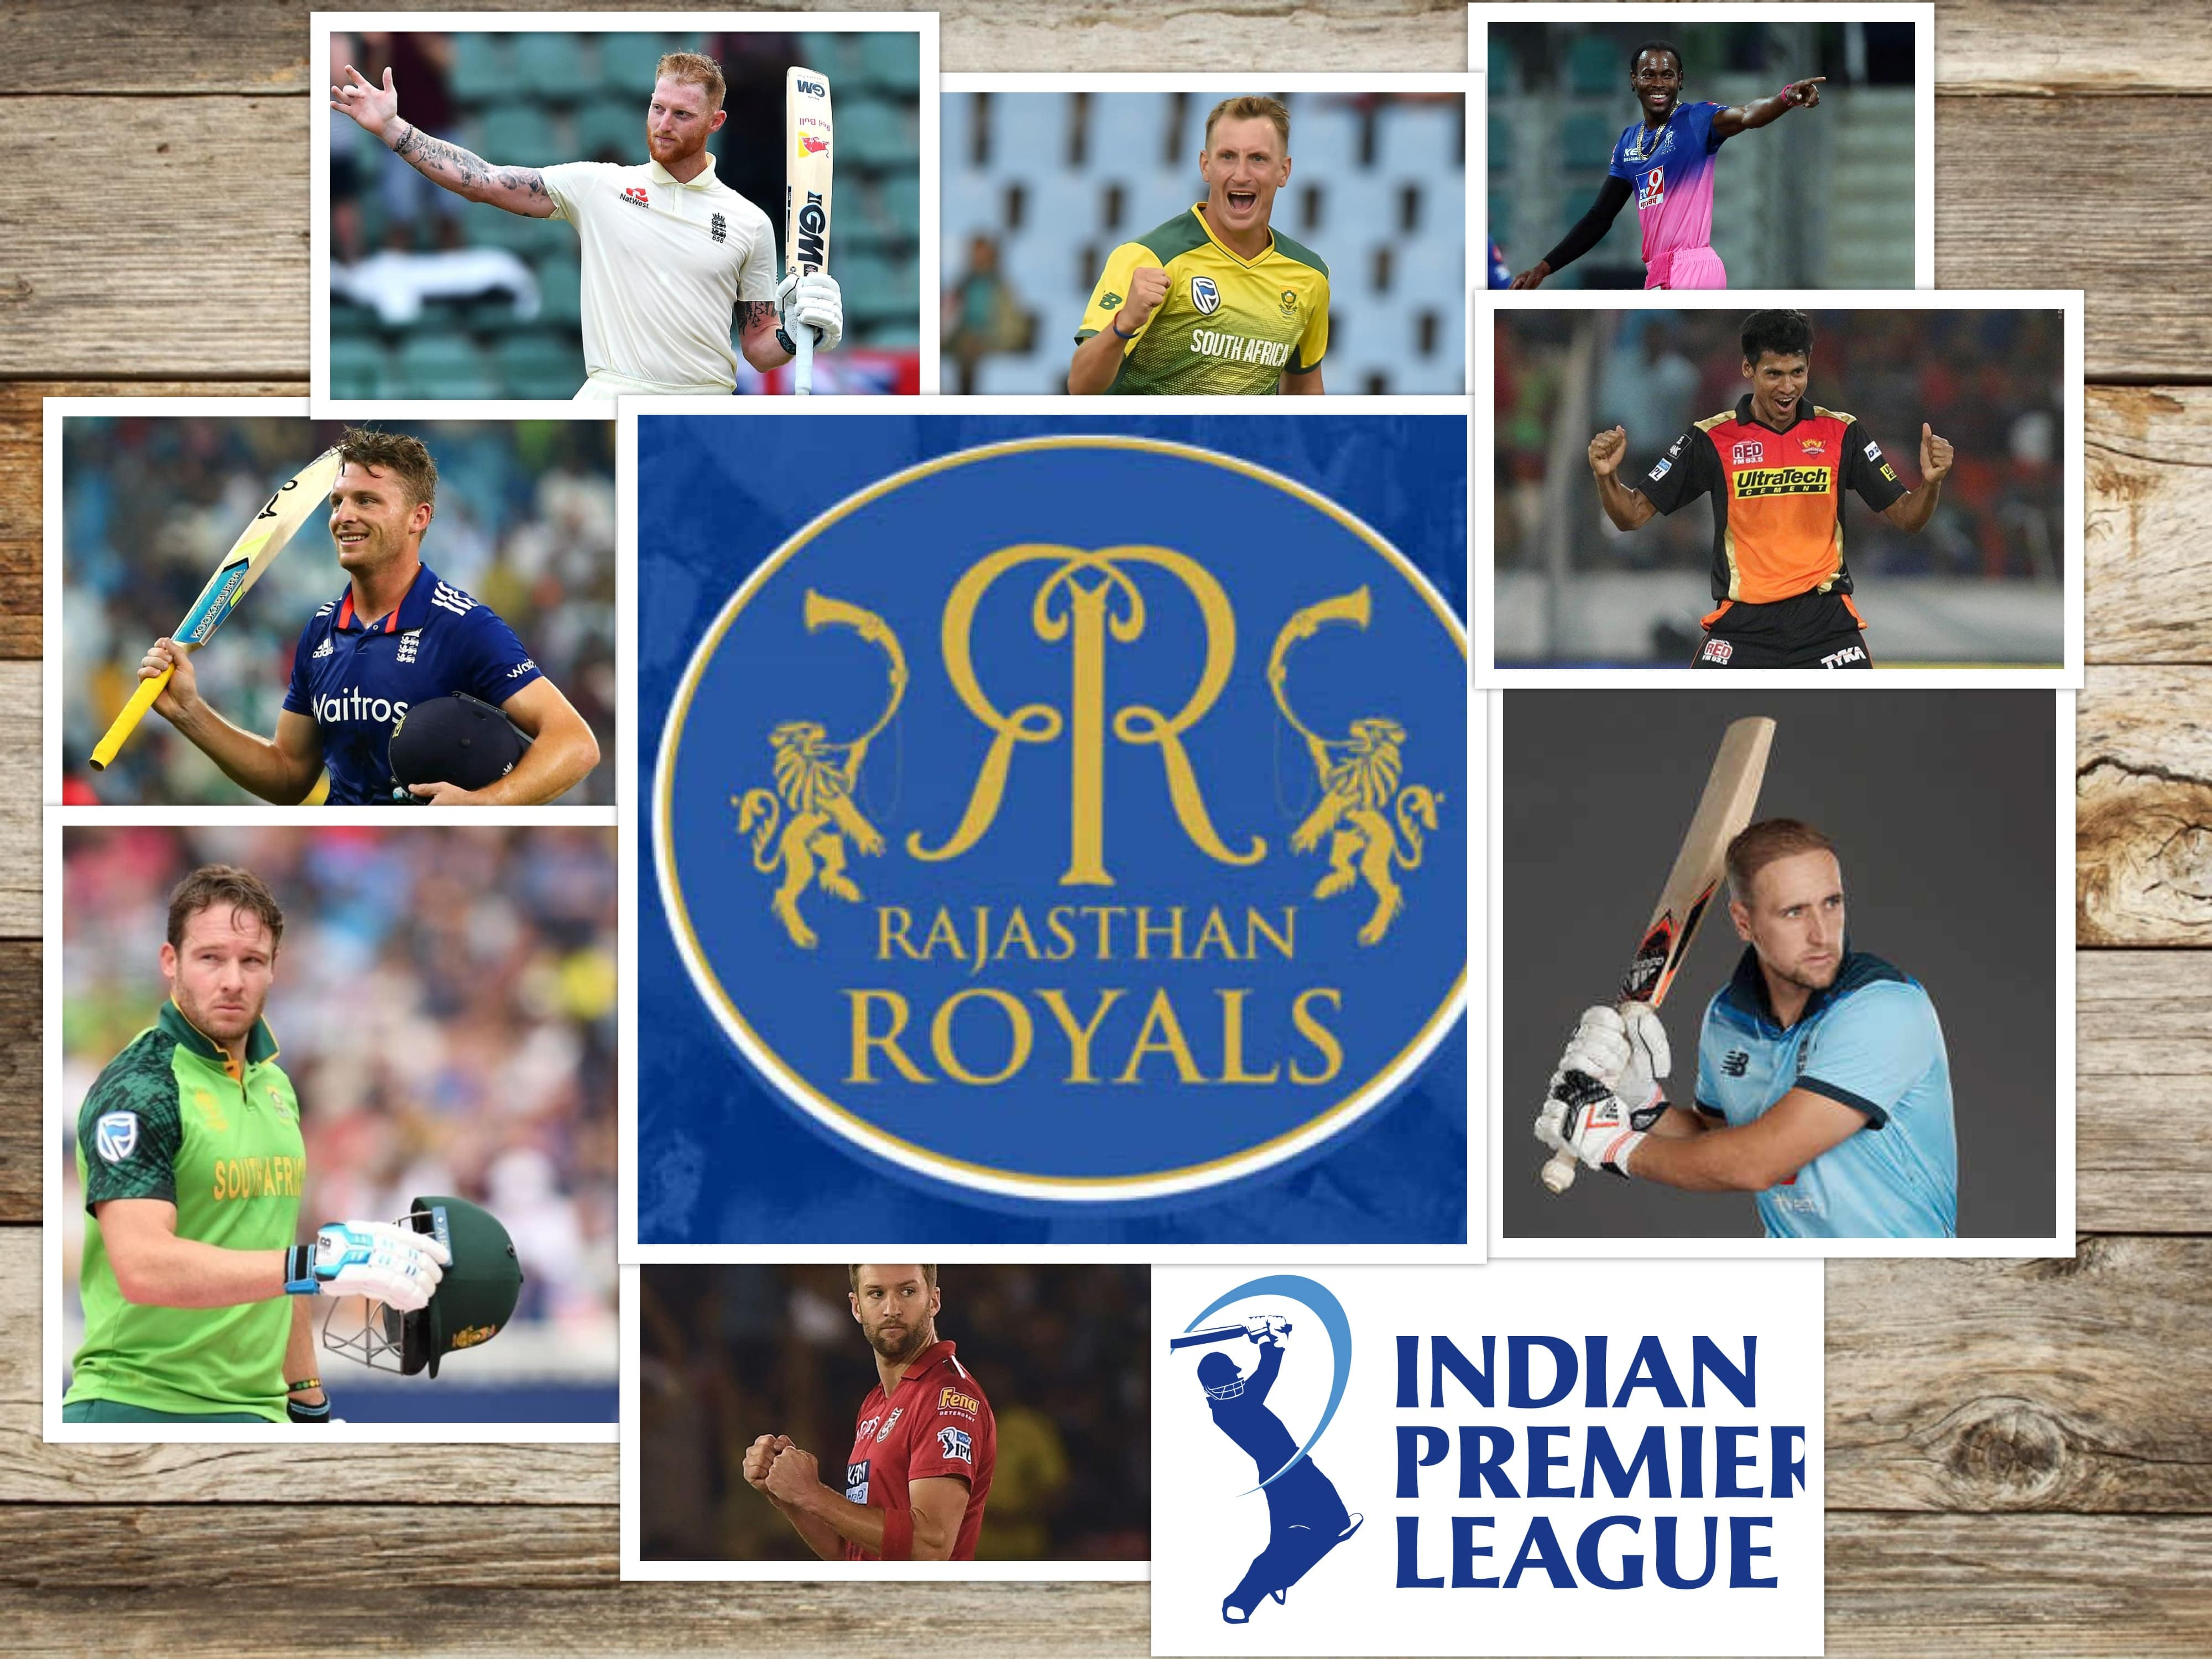 Rajasthan Royals Overseas Players